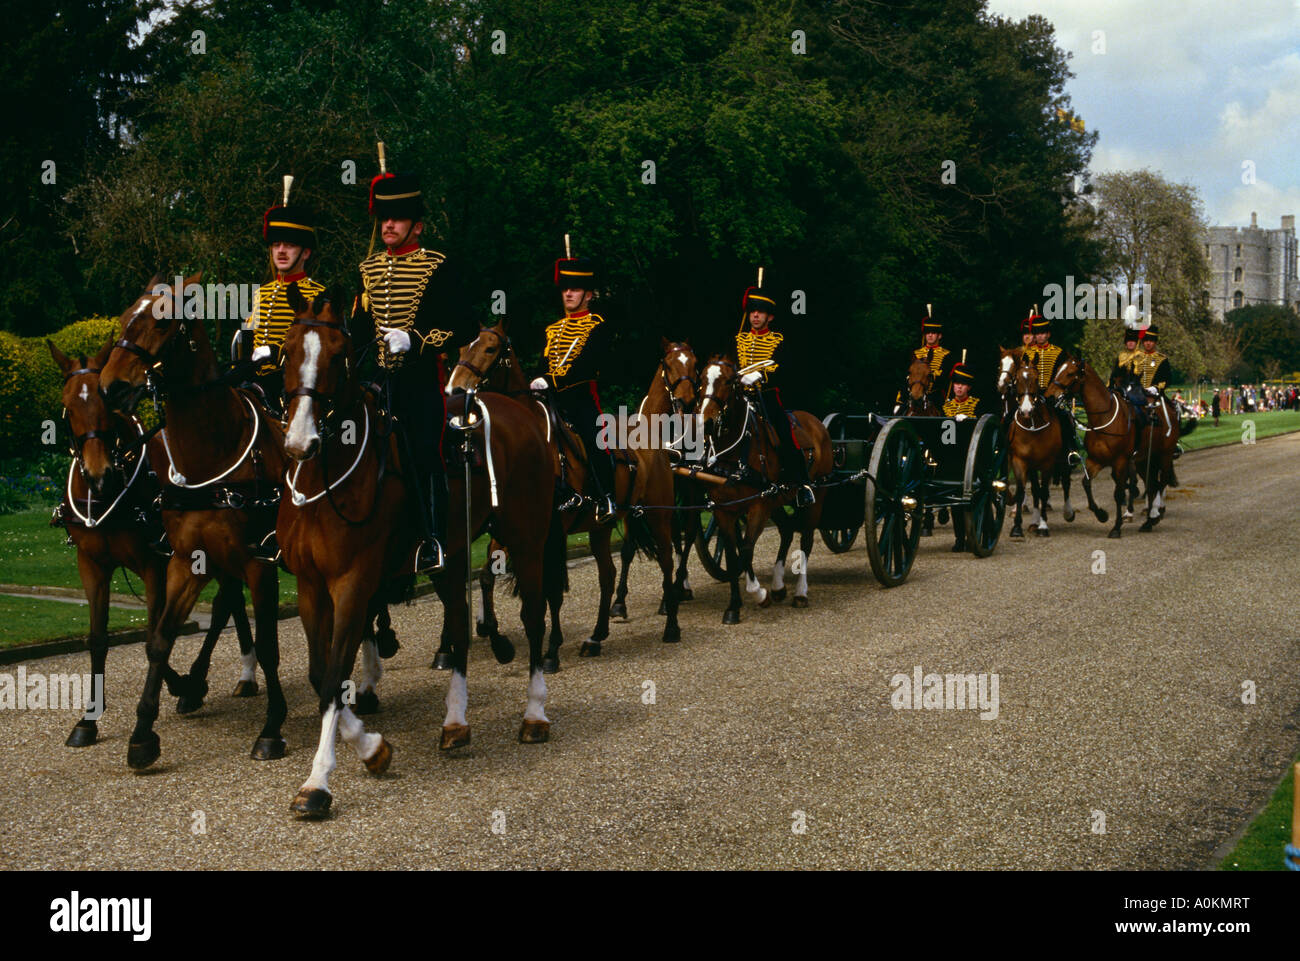 The Kings Troop Royal Horse Artillery in the grounds of Windsor Castle, Berkshire, England - Stock Image